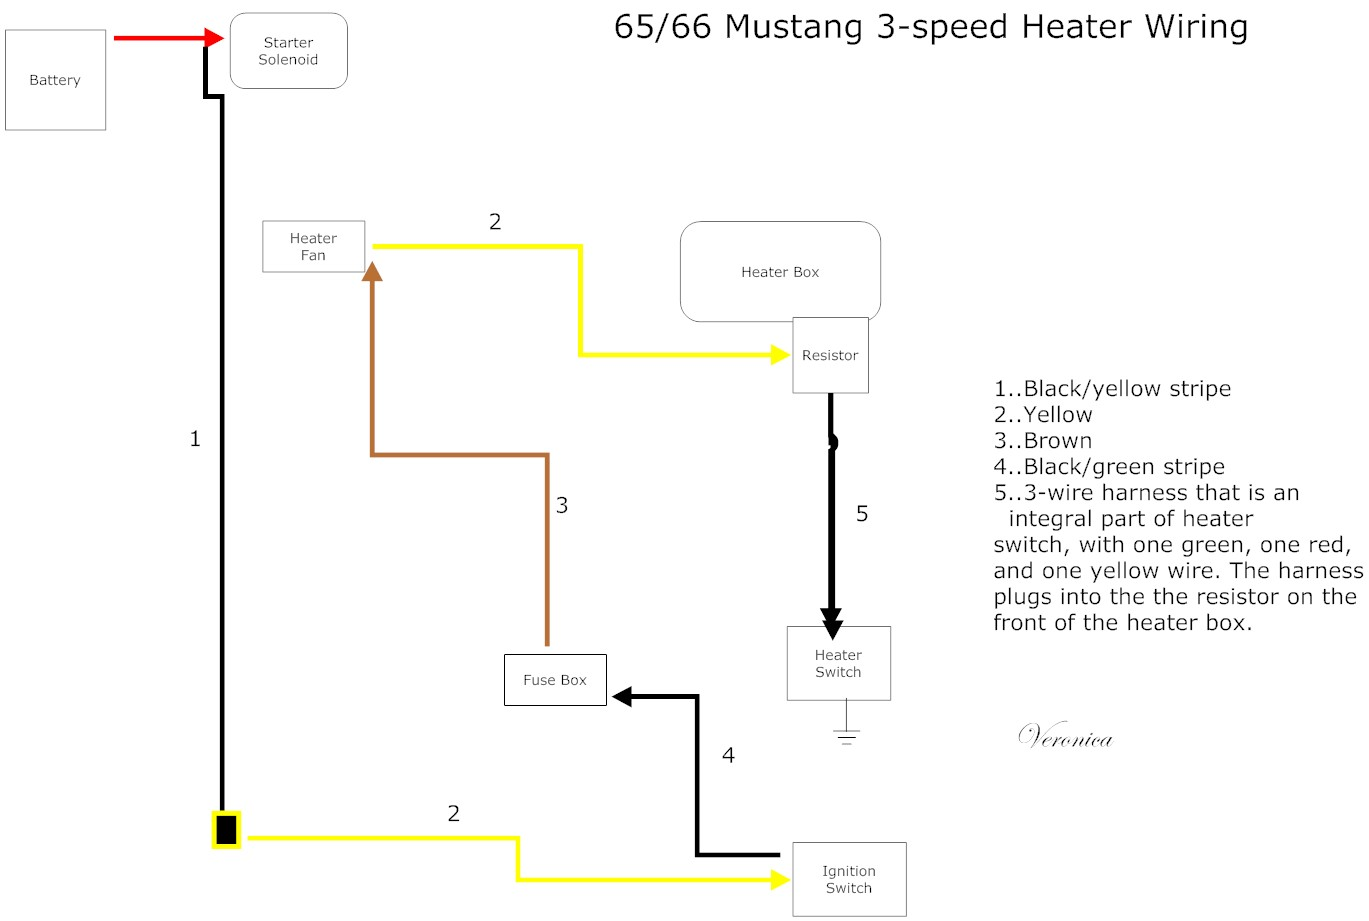 small resolution of here is how the heater blower motor works on the 65 66 mustangs if you click on the diagrams they will pop out so that you can see the entire diagram